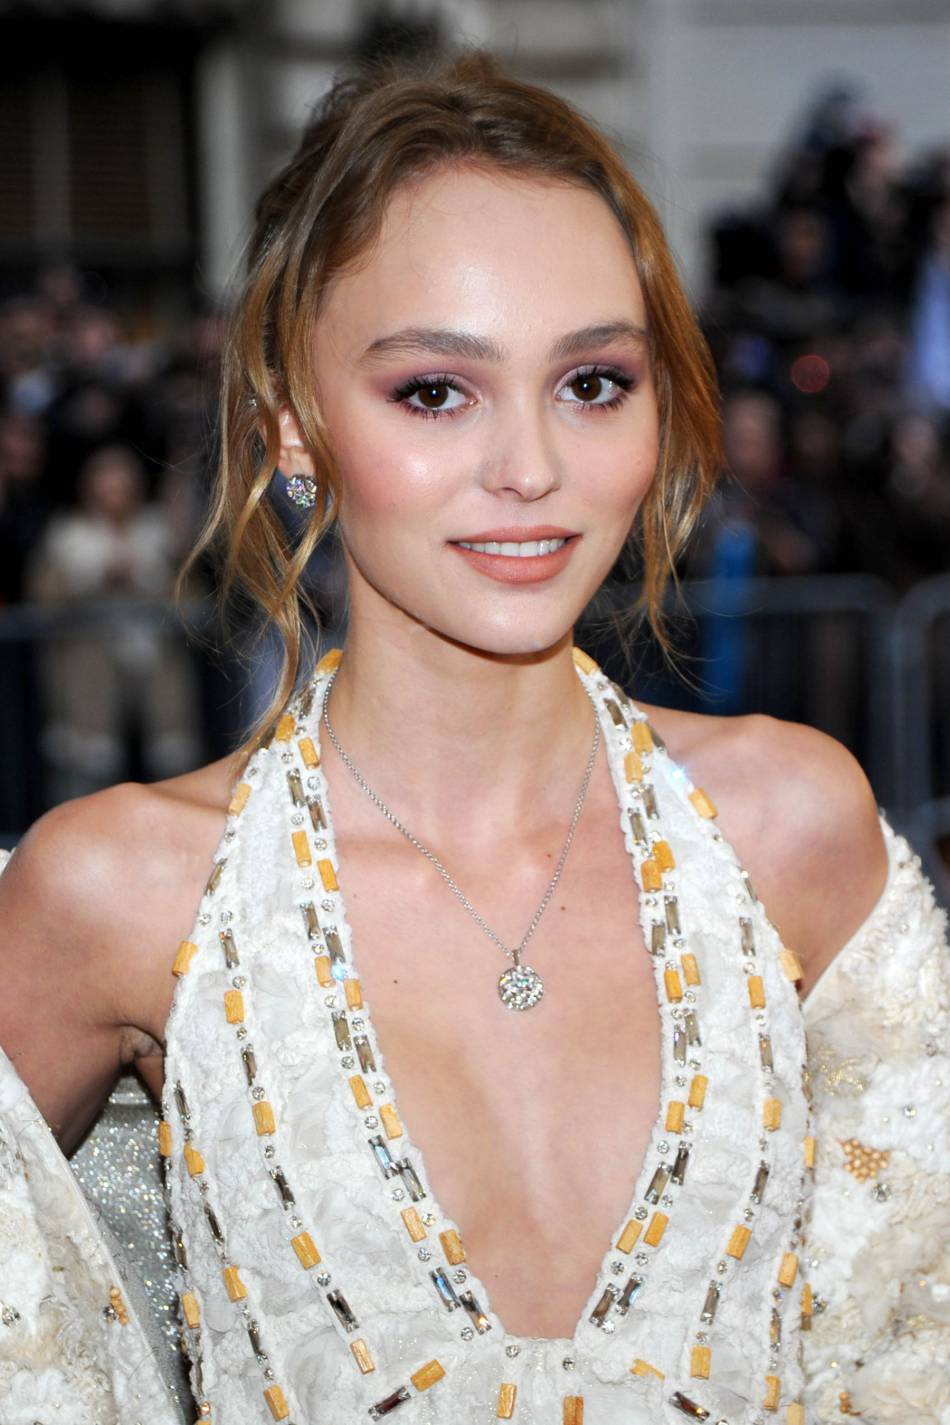 pour son premier met ball gala lily rose depp s 39 en sort haut la main avec une mise en beaut. Black Bedroom Furniture Sets. Home Design Ideas